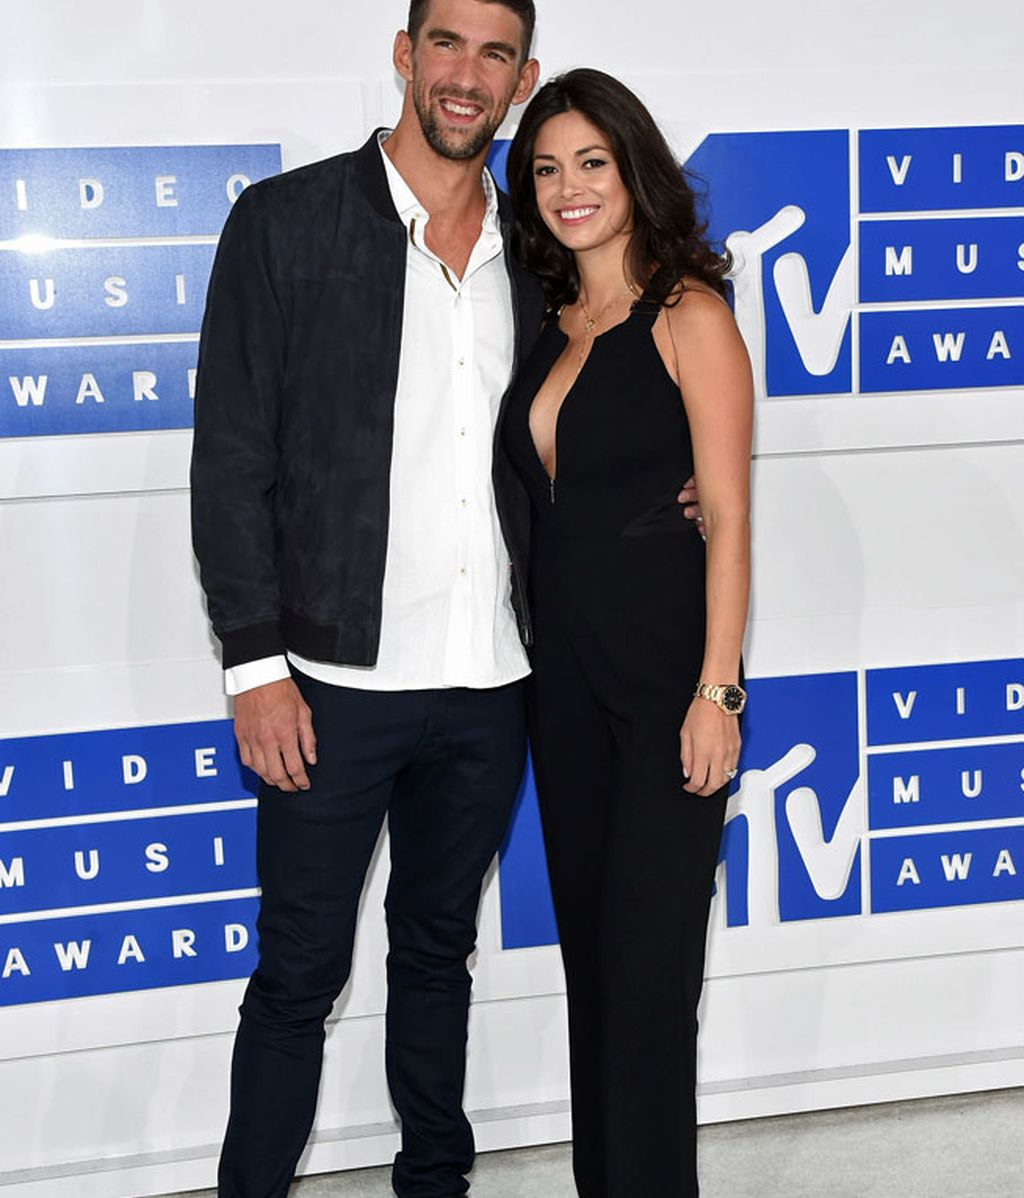 Michael Phelps y Nicole Johnson en los 'MTV MVA' en Madison Square